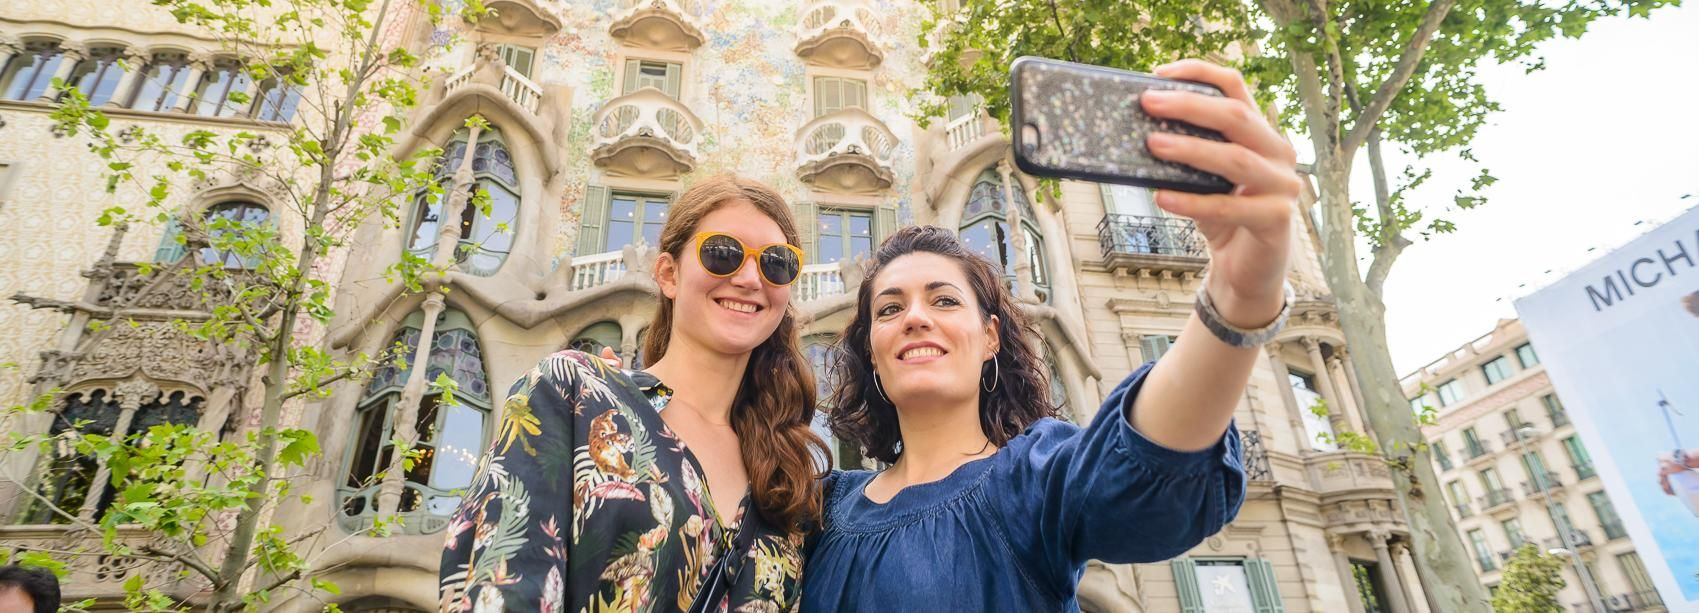 Barcelona: Discover Gaudi and Modernisme Walking Tour